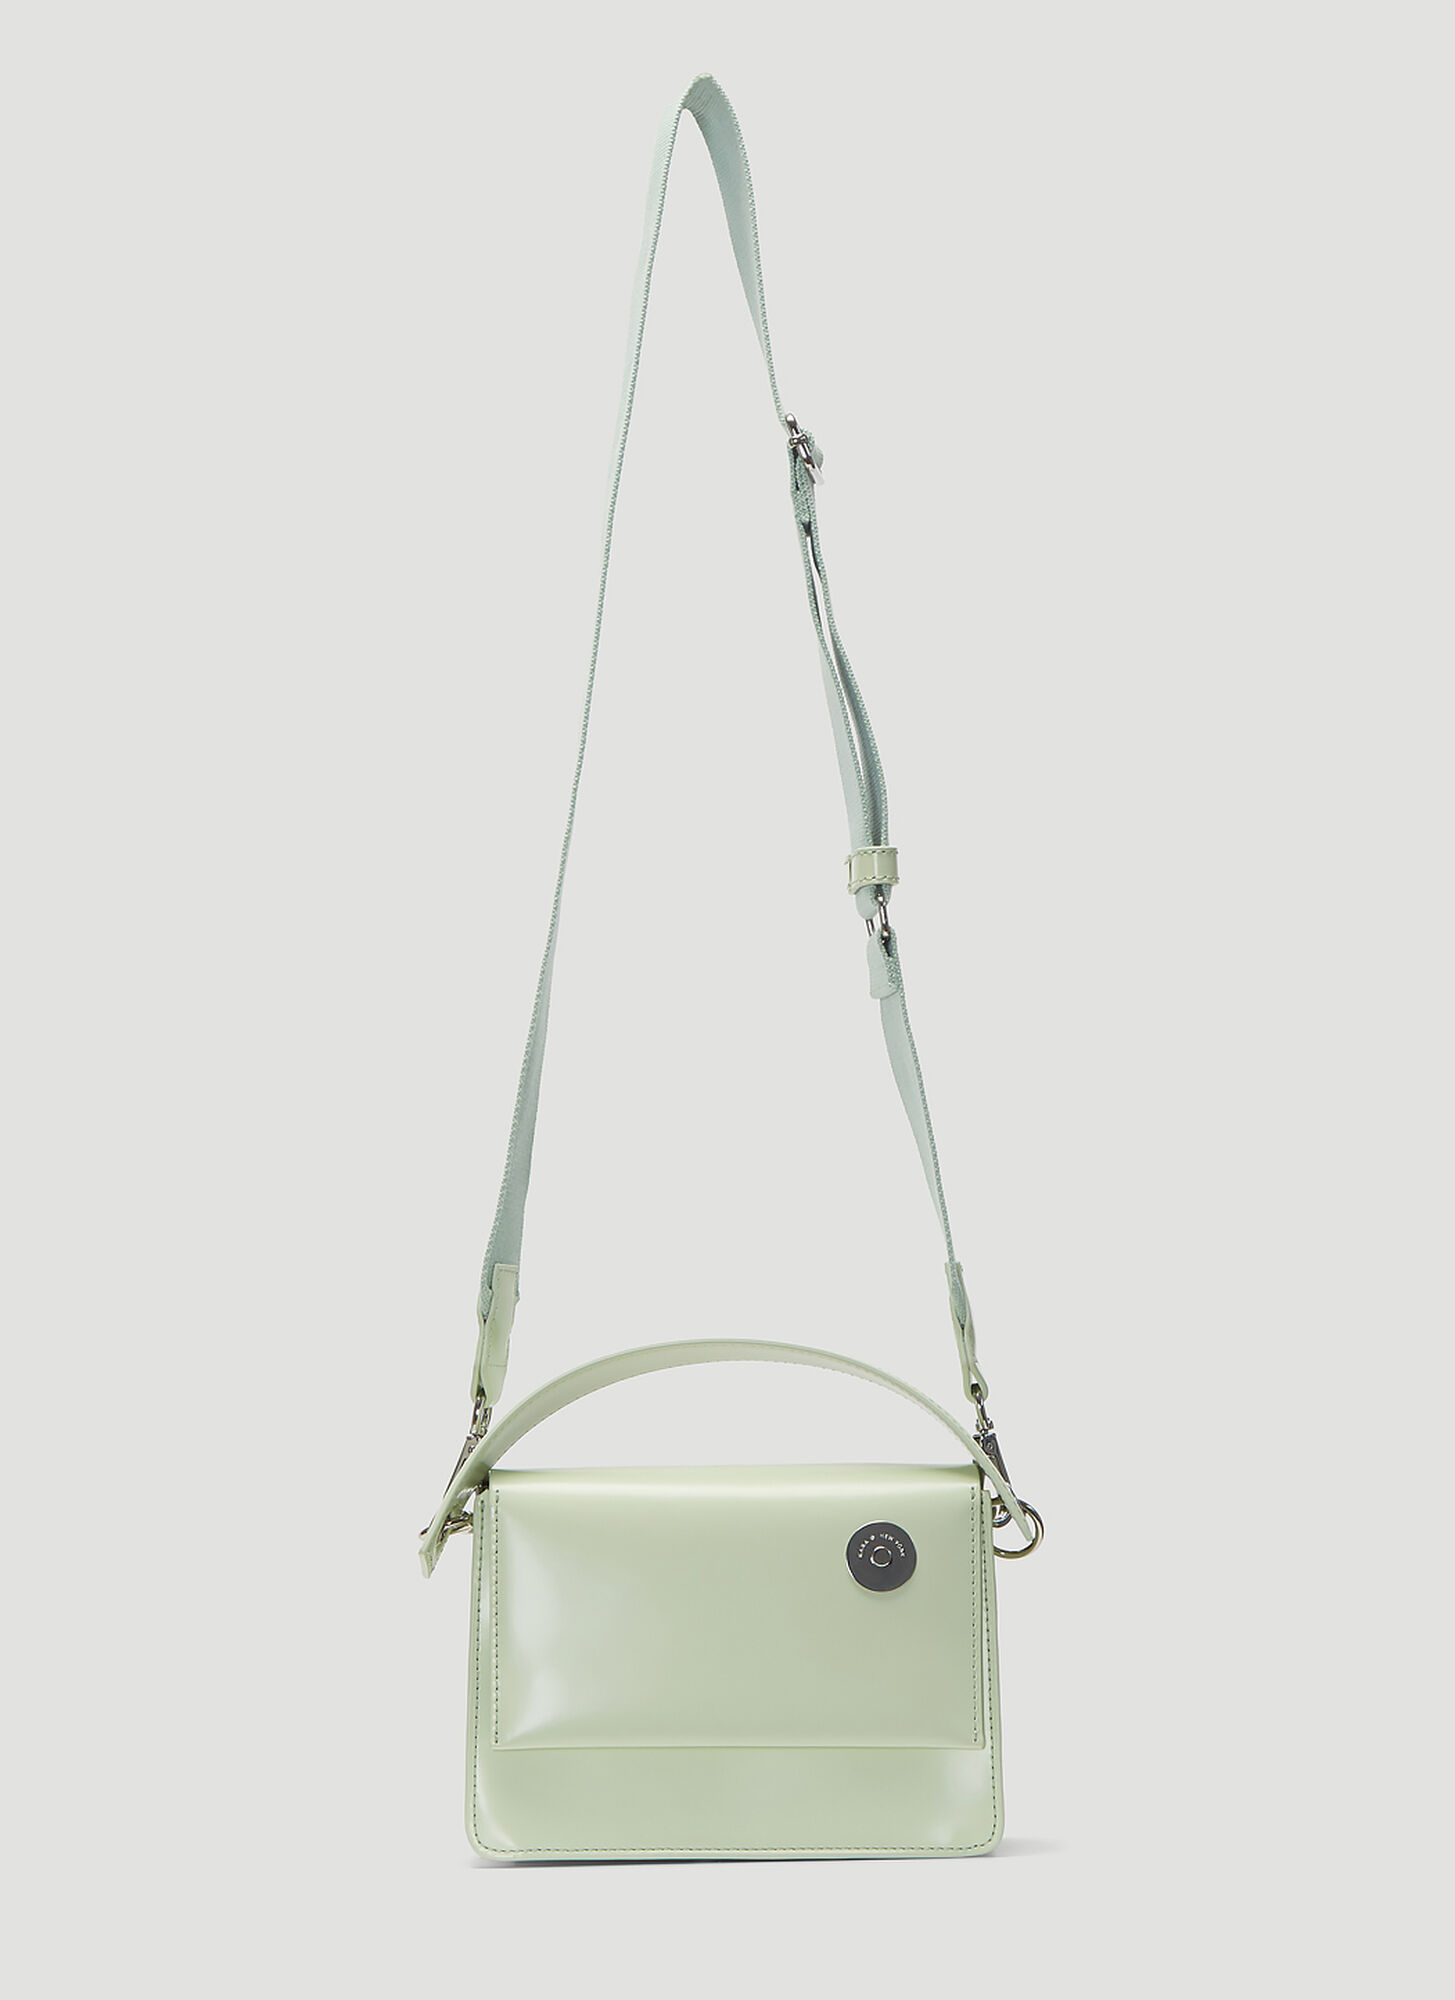 Kara Baby Pinch Shoulder Bag in Green